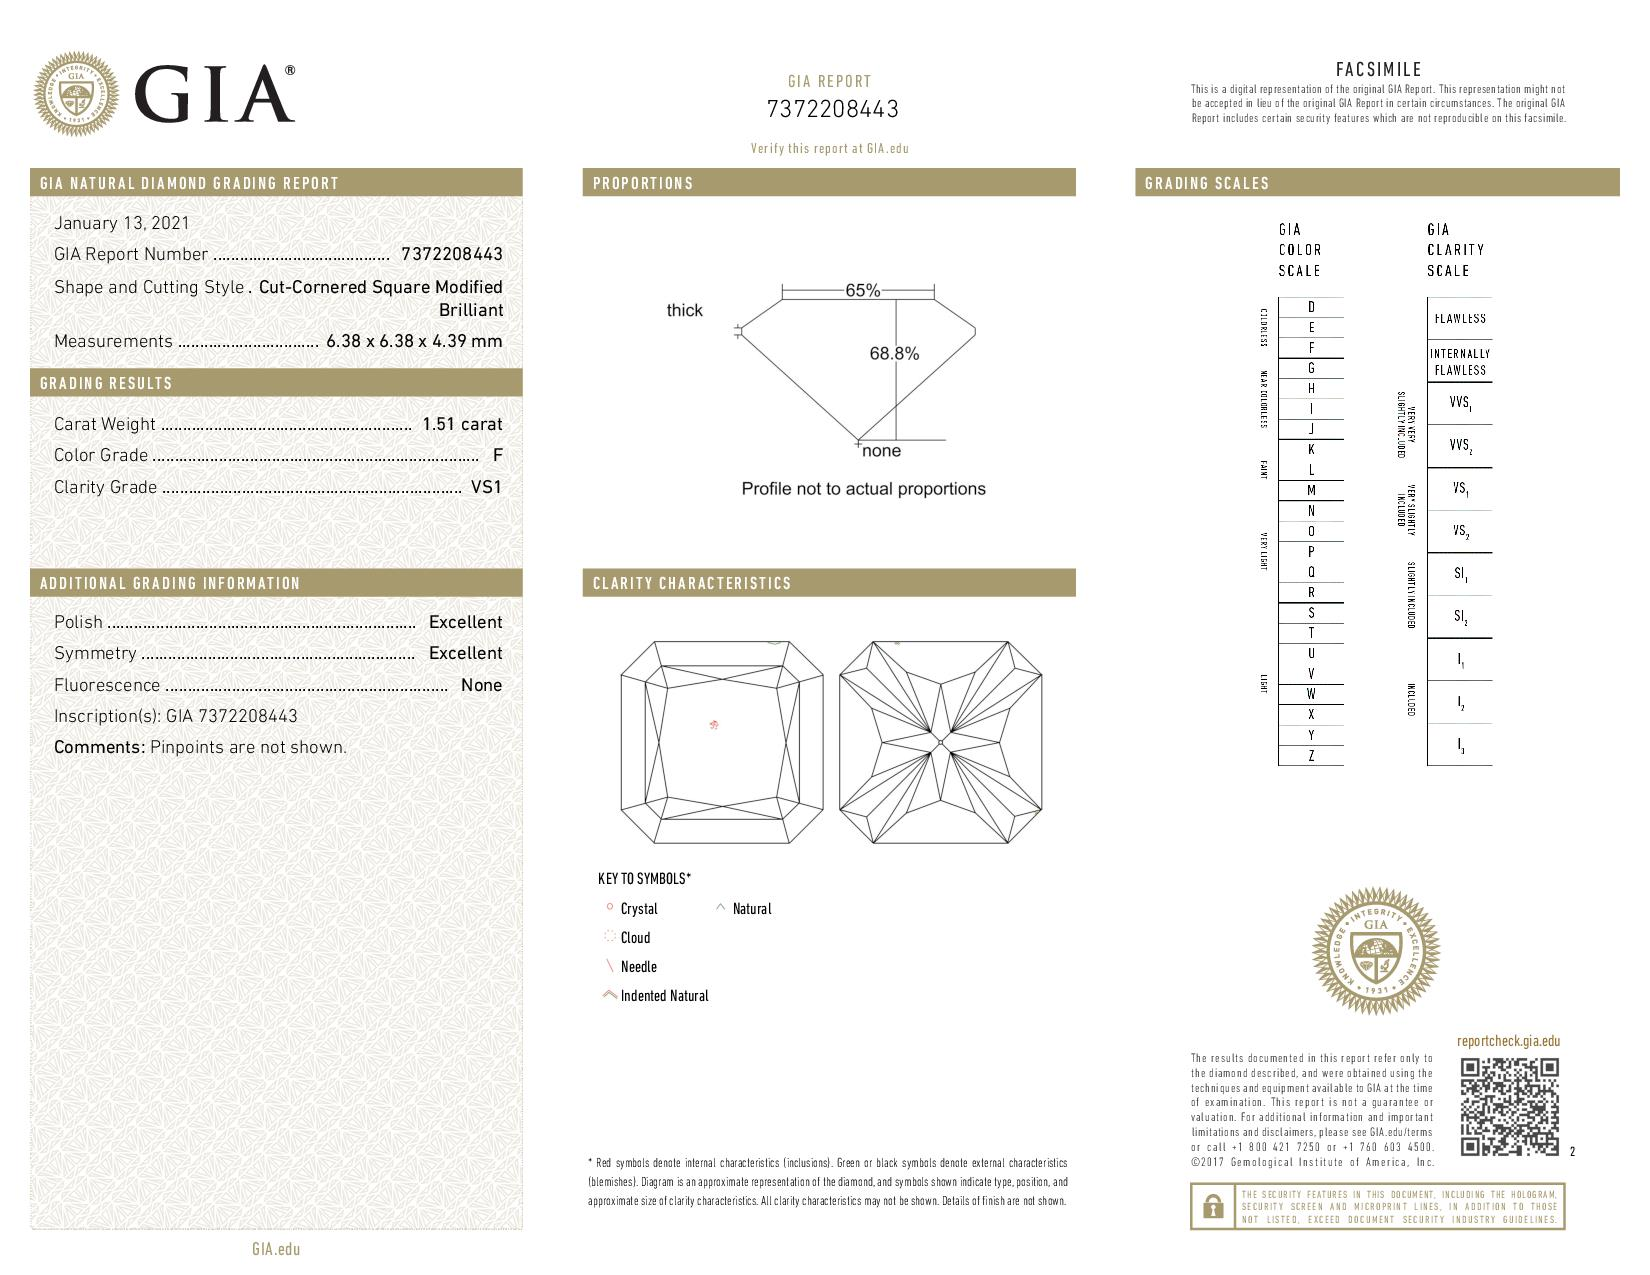 This is a 1.51 carat radiant shape, F color, VS1 clarity natural diamond accompanied by a GIA grading report.